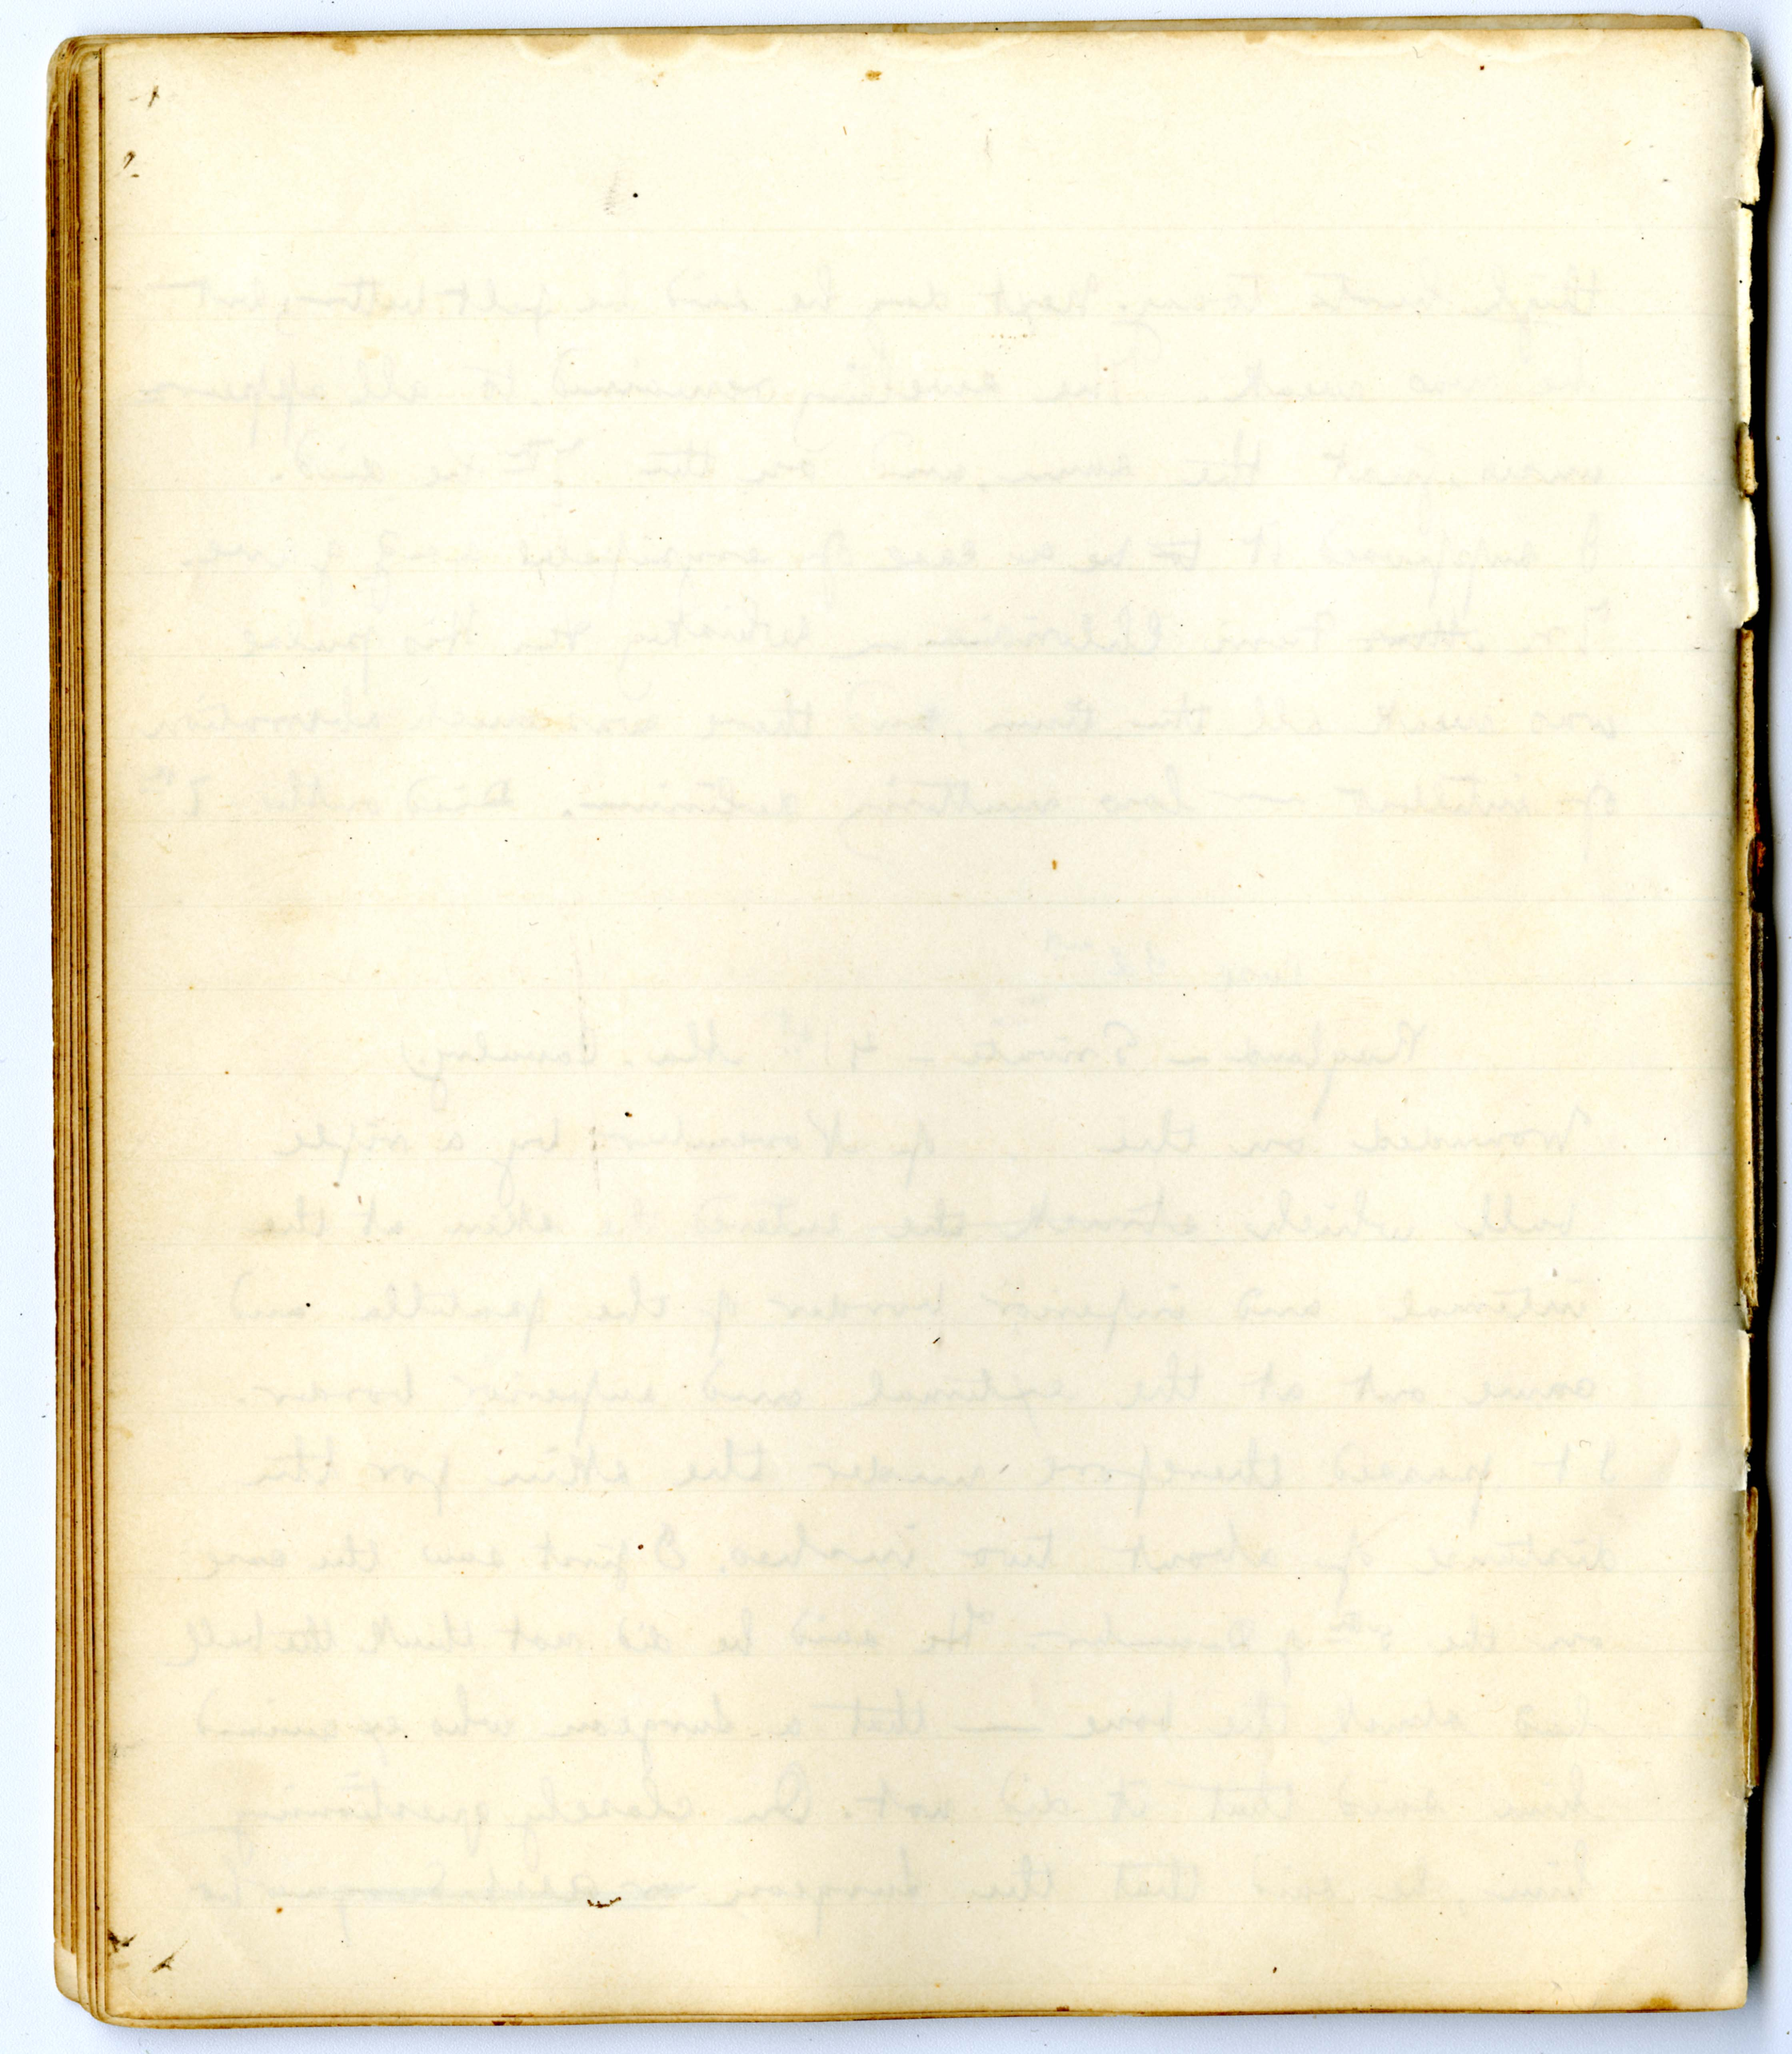 R.L. Johnson Medical Journal, Page 86